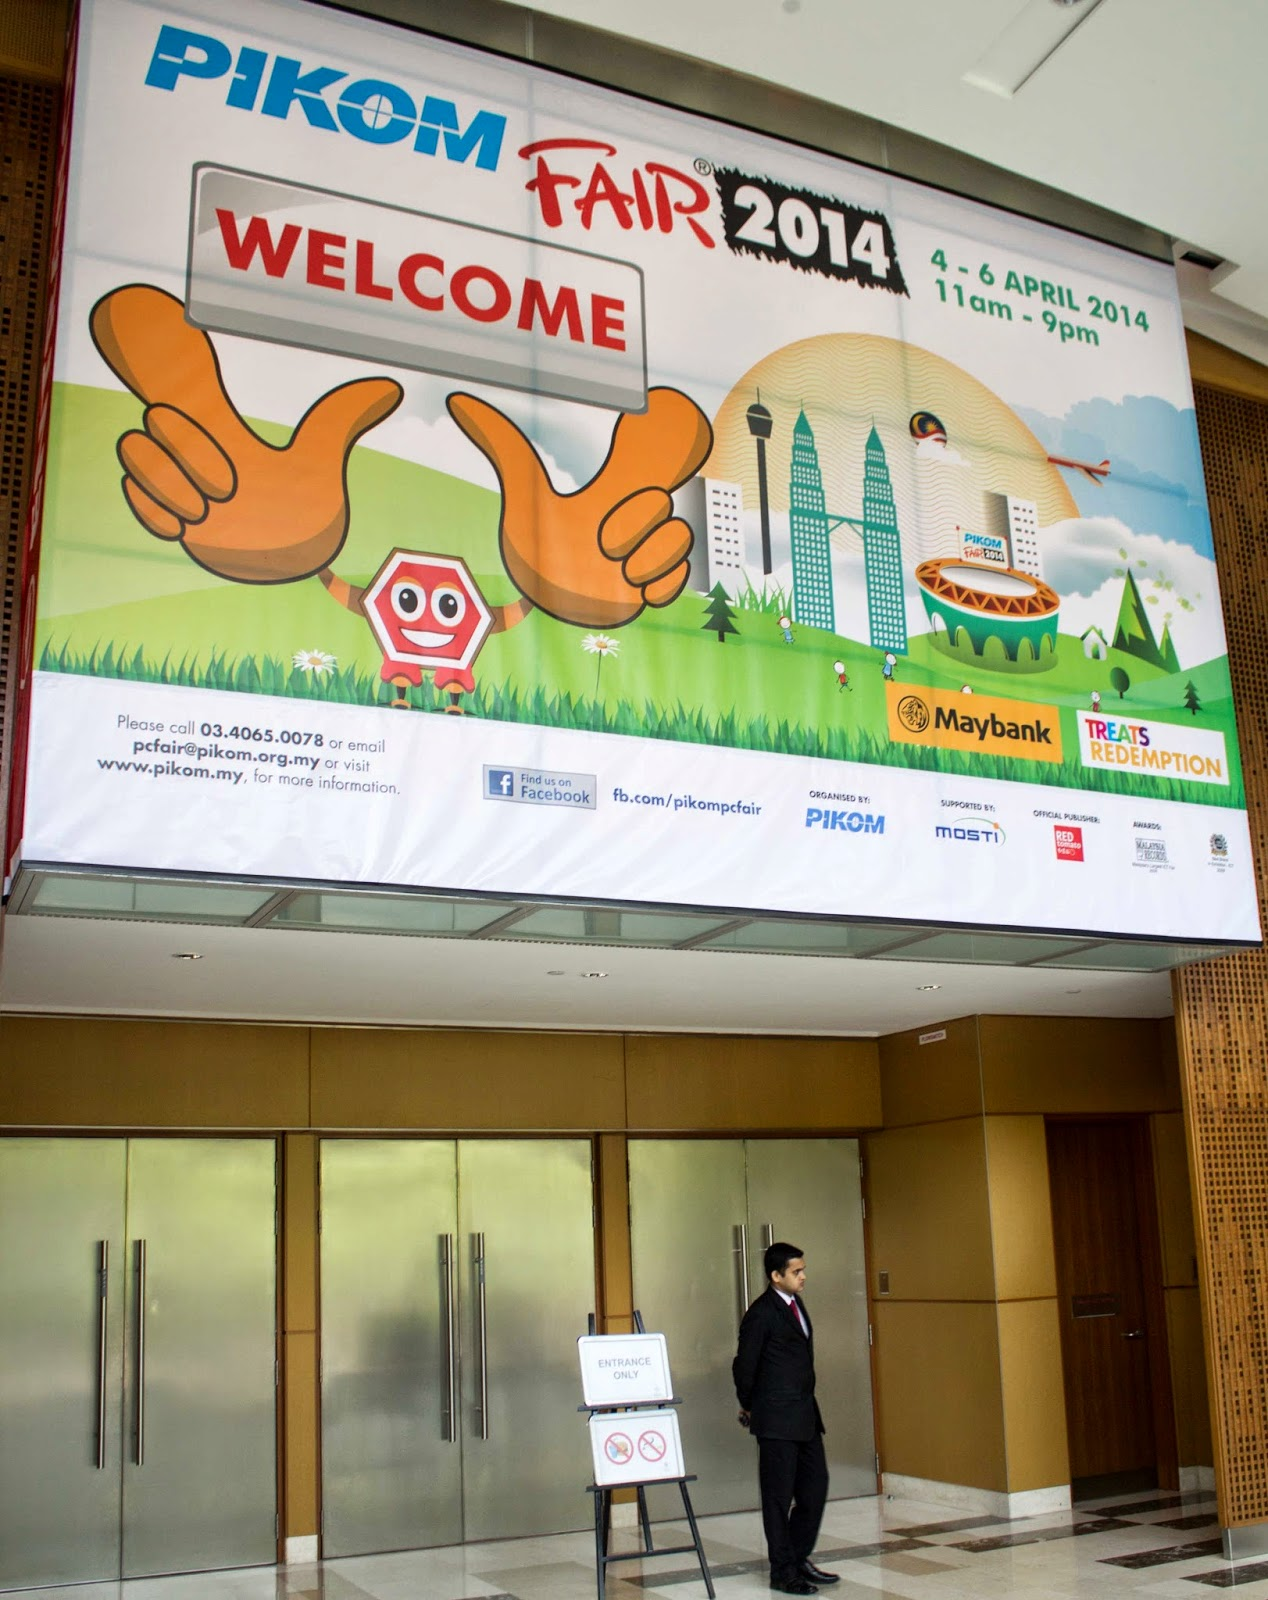 Coverage of PIKOM PC Fair 2014 @ Kuala Lumpur Convention Center 273